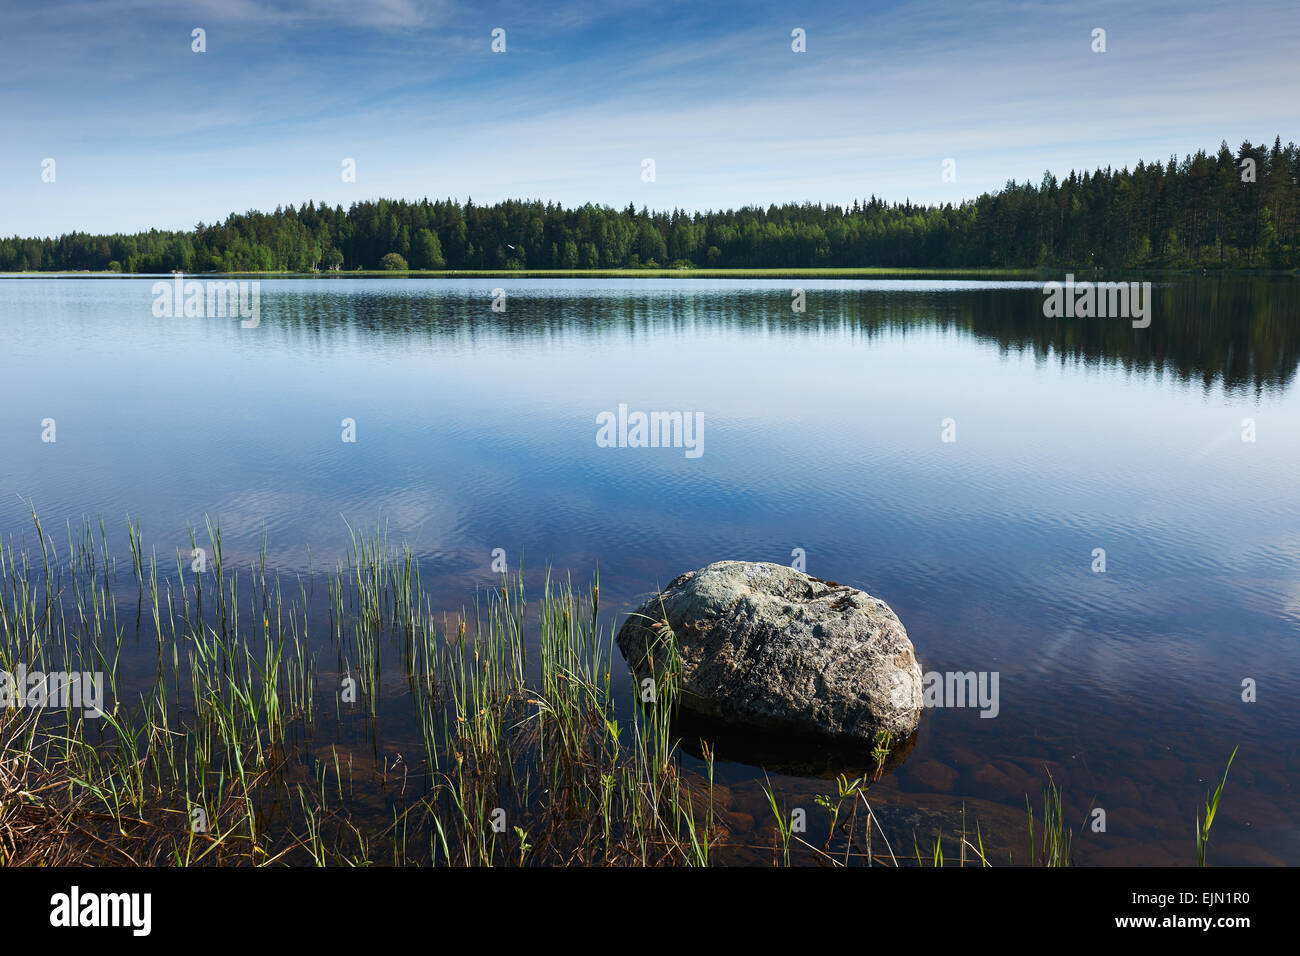 Finnish lake with trees in the background and a big rock in the foreground - Stock Image